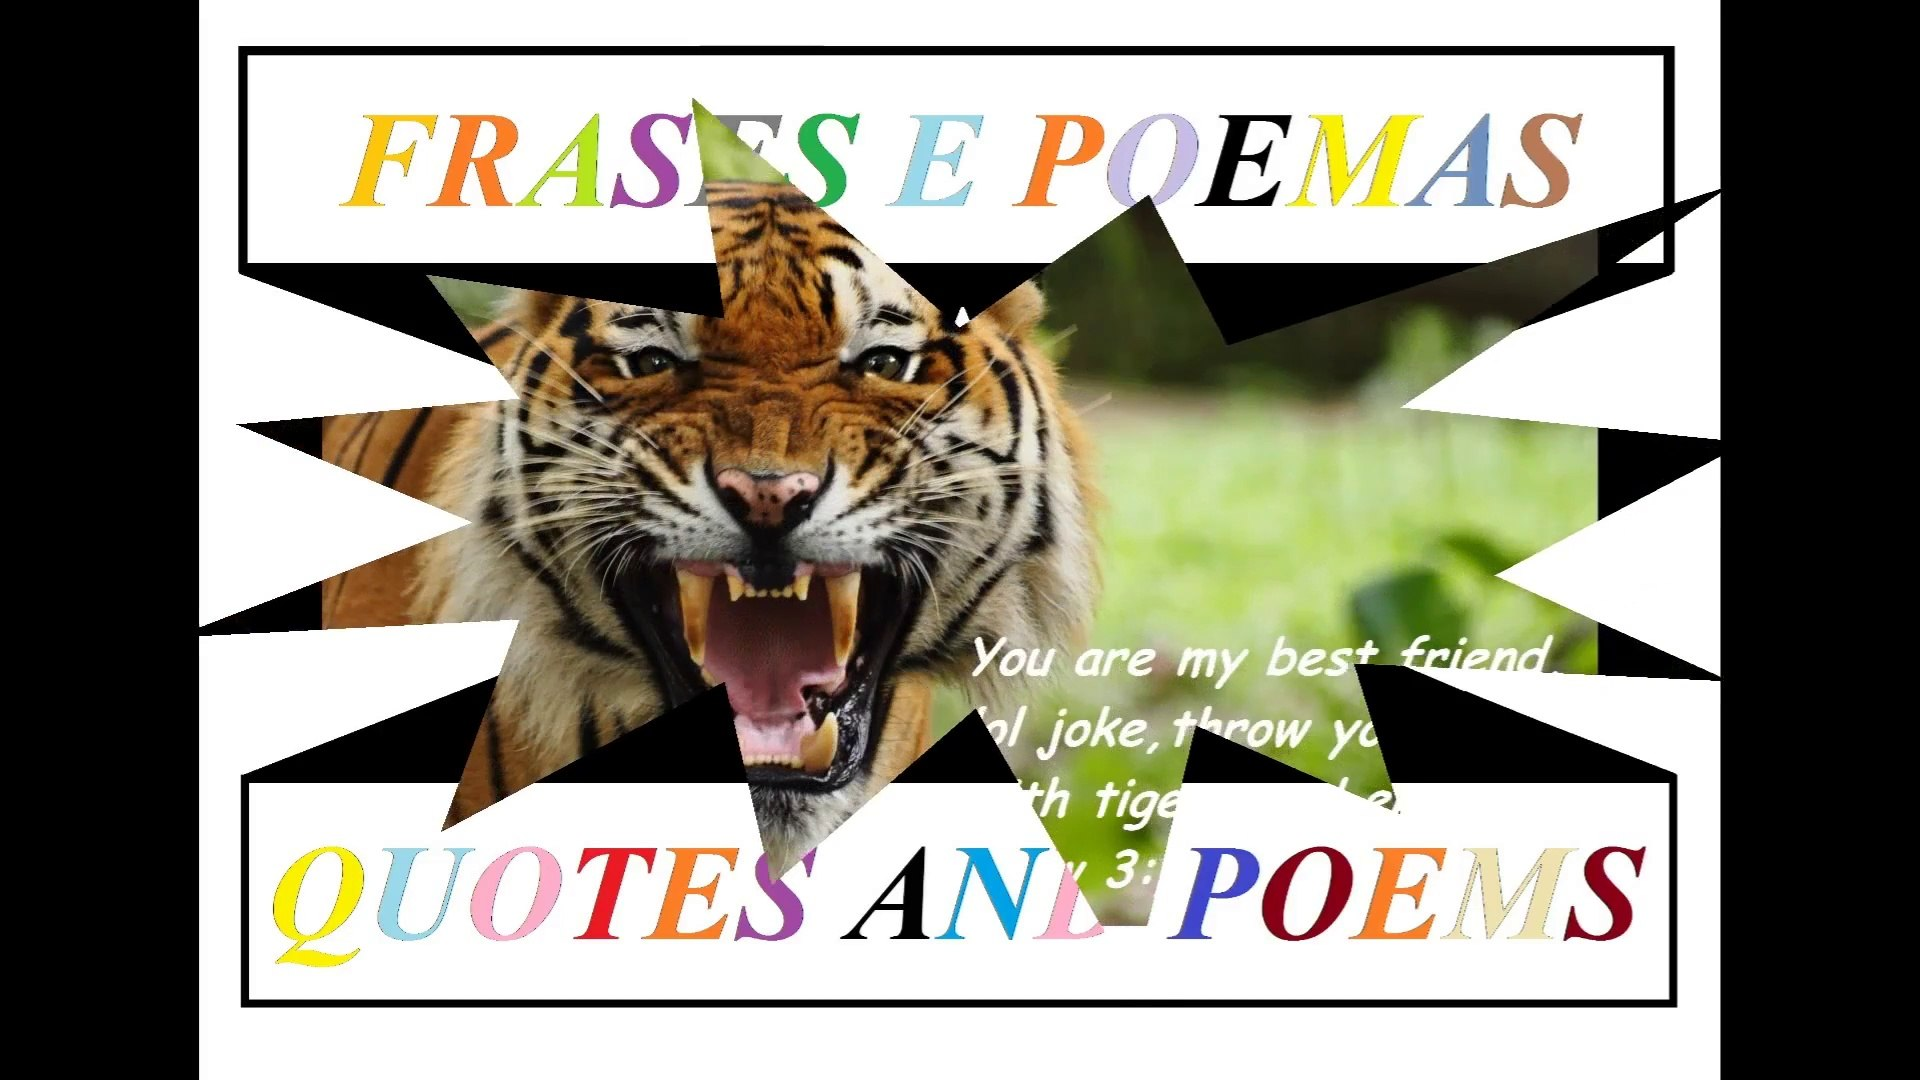 Your My Best Friend Lol Joke Jail With Tigers Quotes And Poems